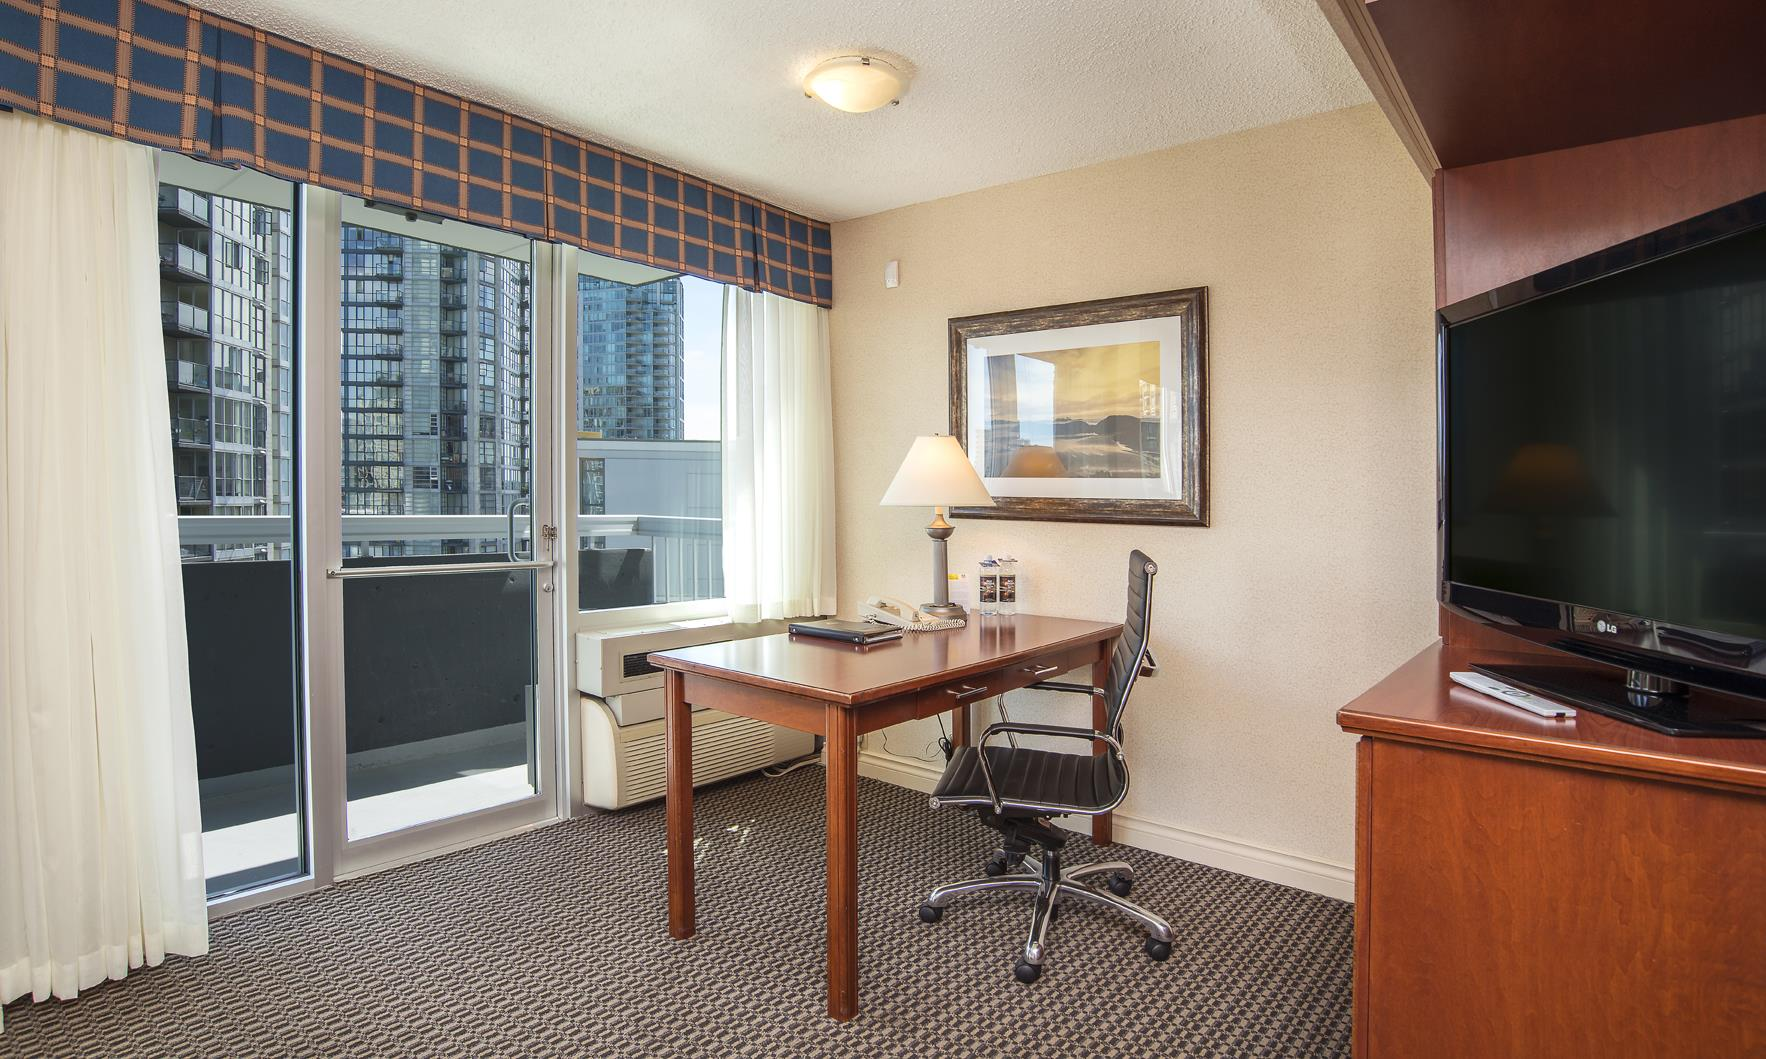 Best Western Plus Chateau Granville Hotel & Suites & Conference Ctr. in Vancouver: Two Double Bed Suite